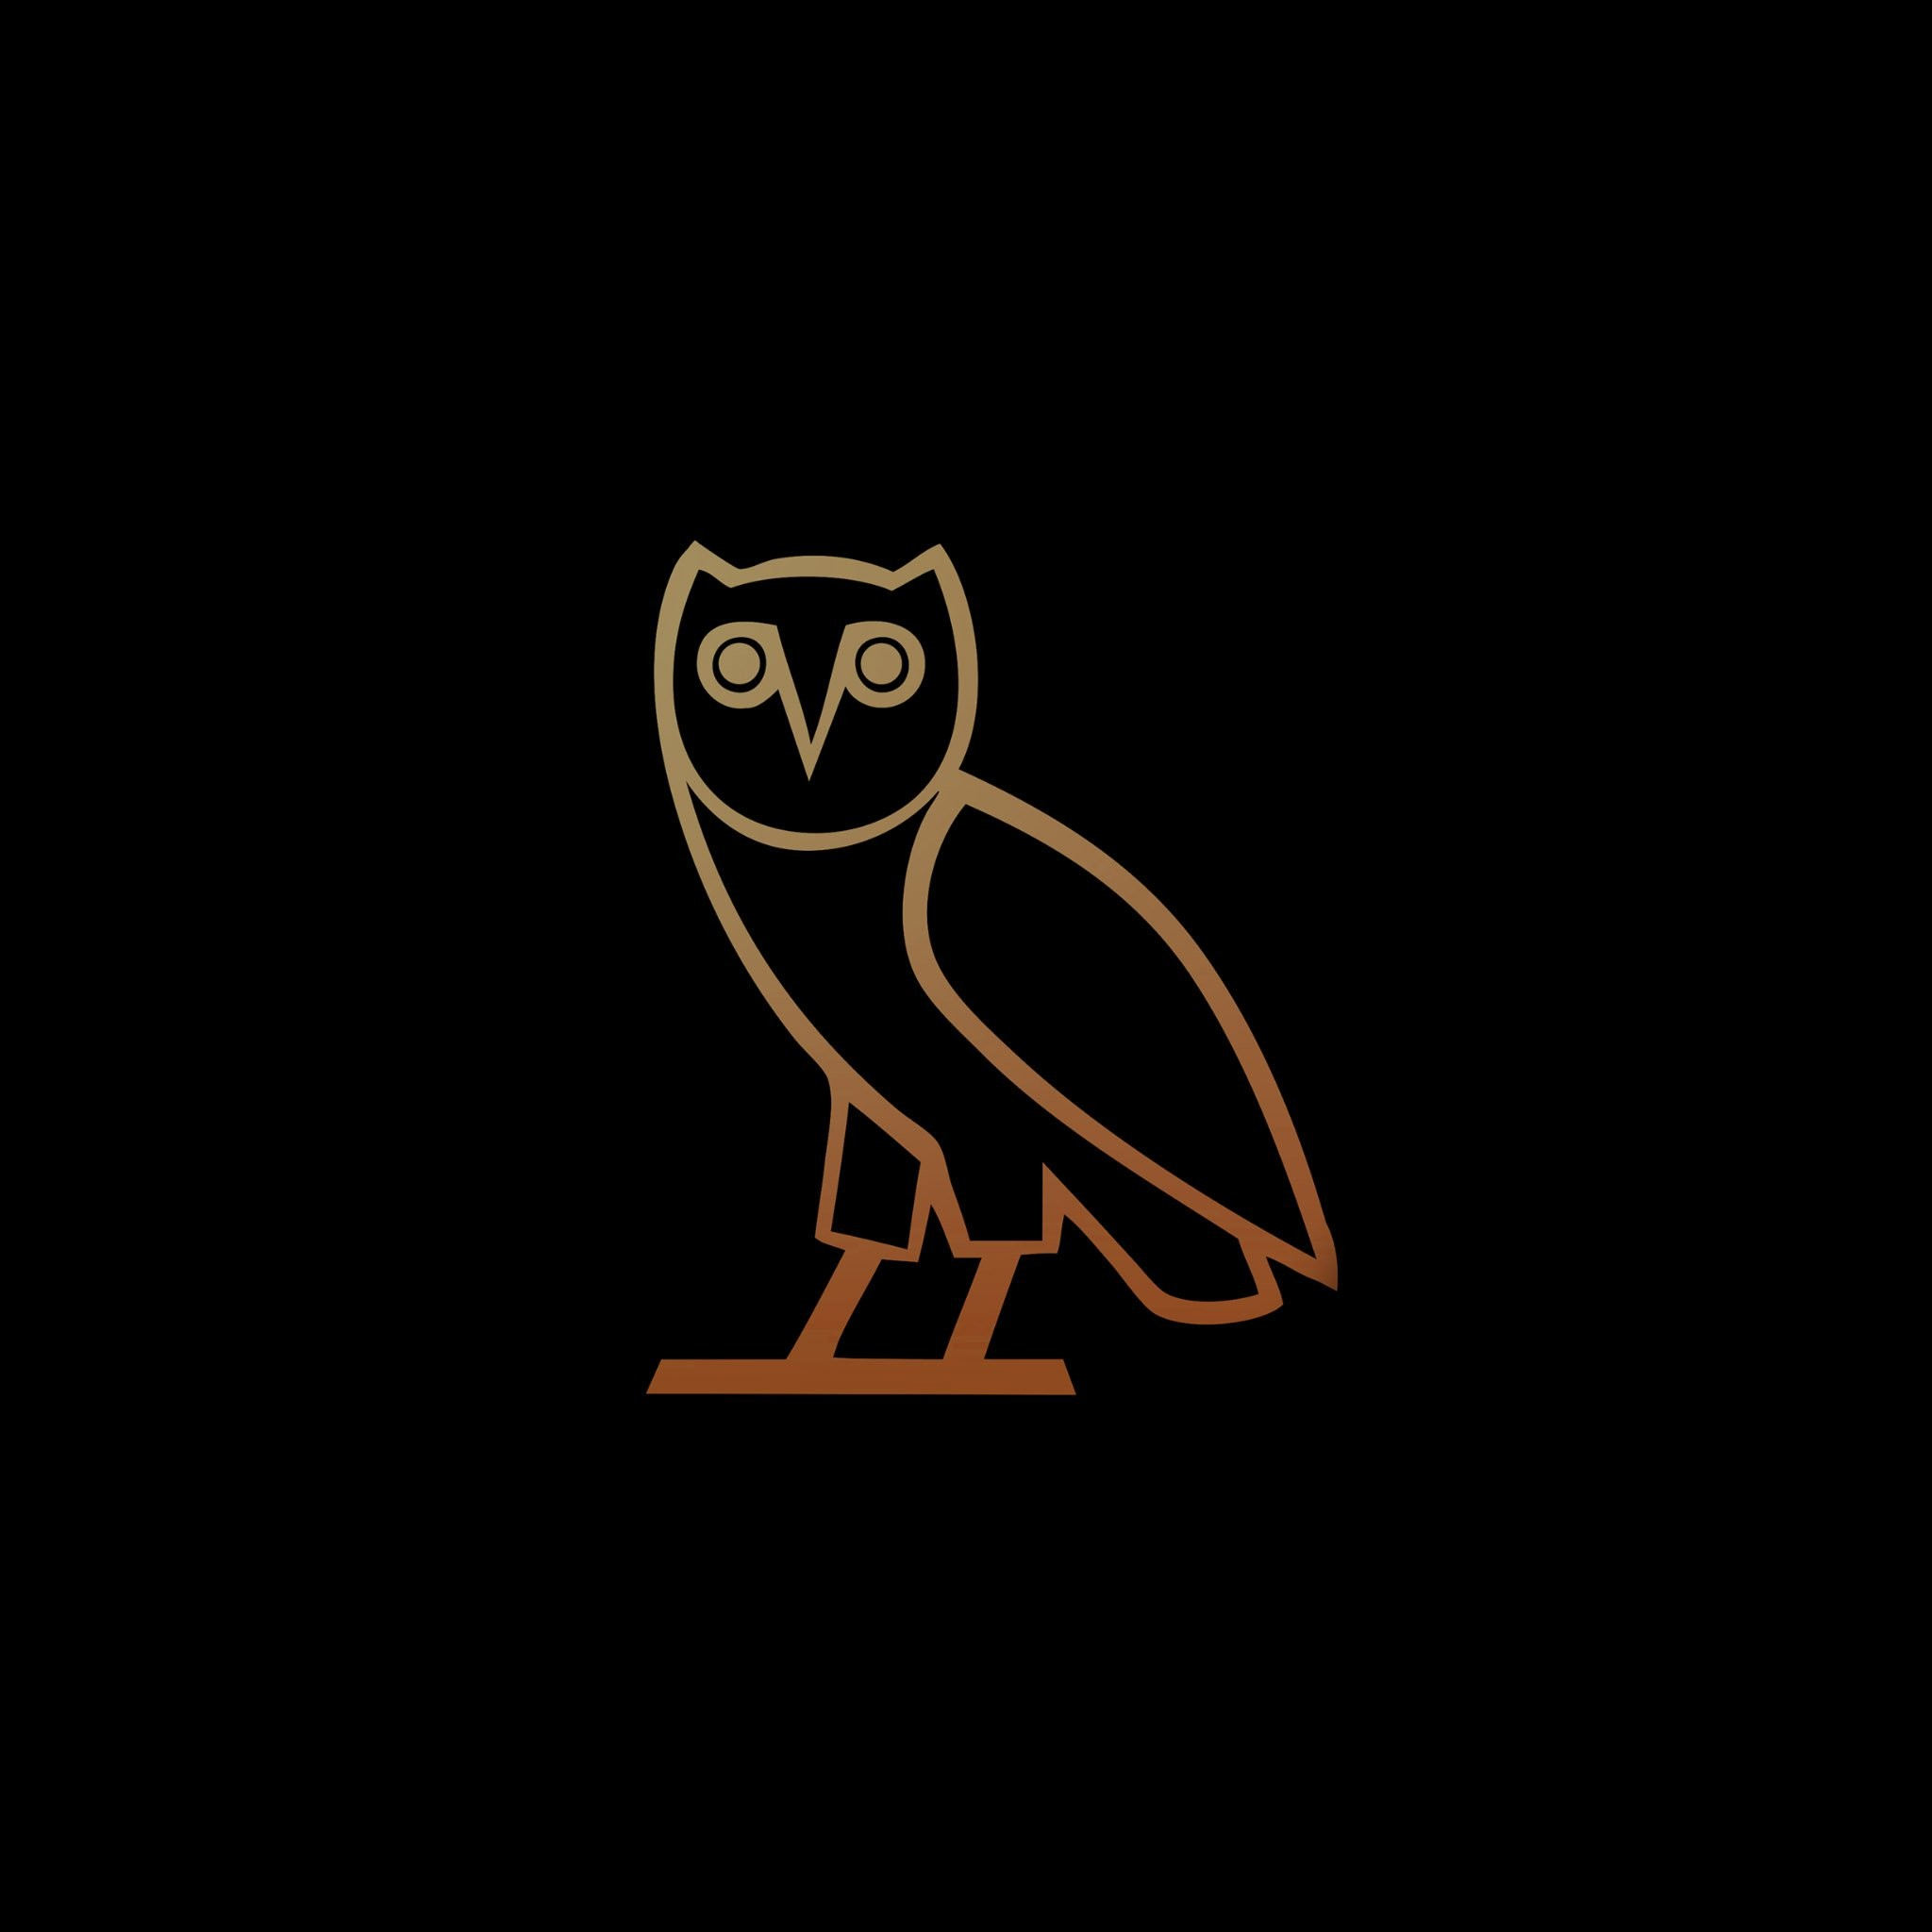 Ovo Iphone 6 Wallpaper 81 Images